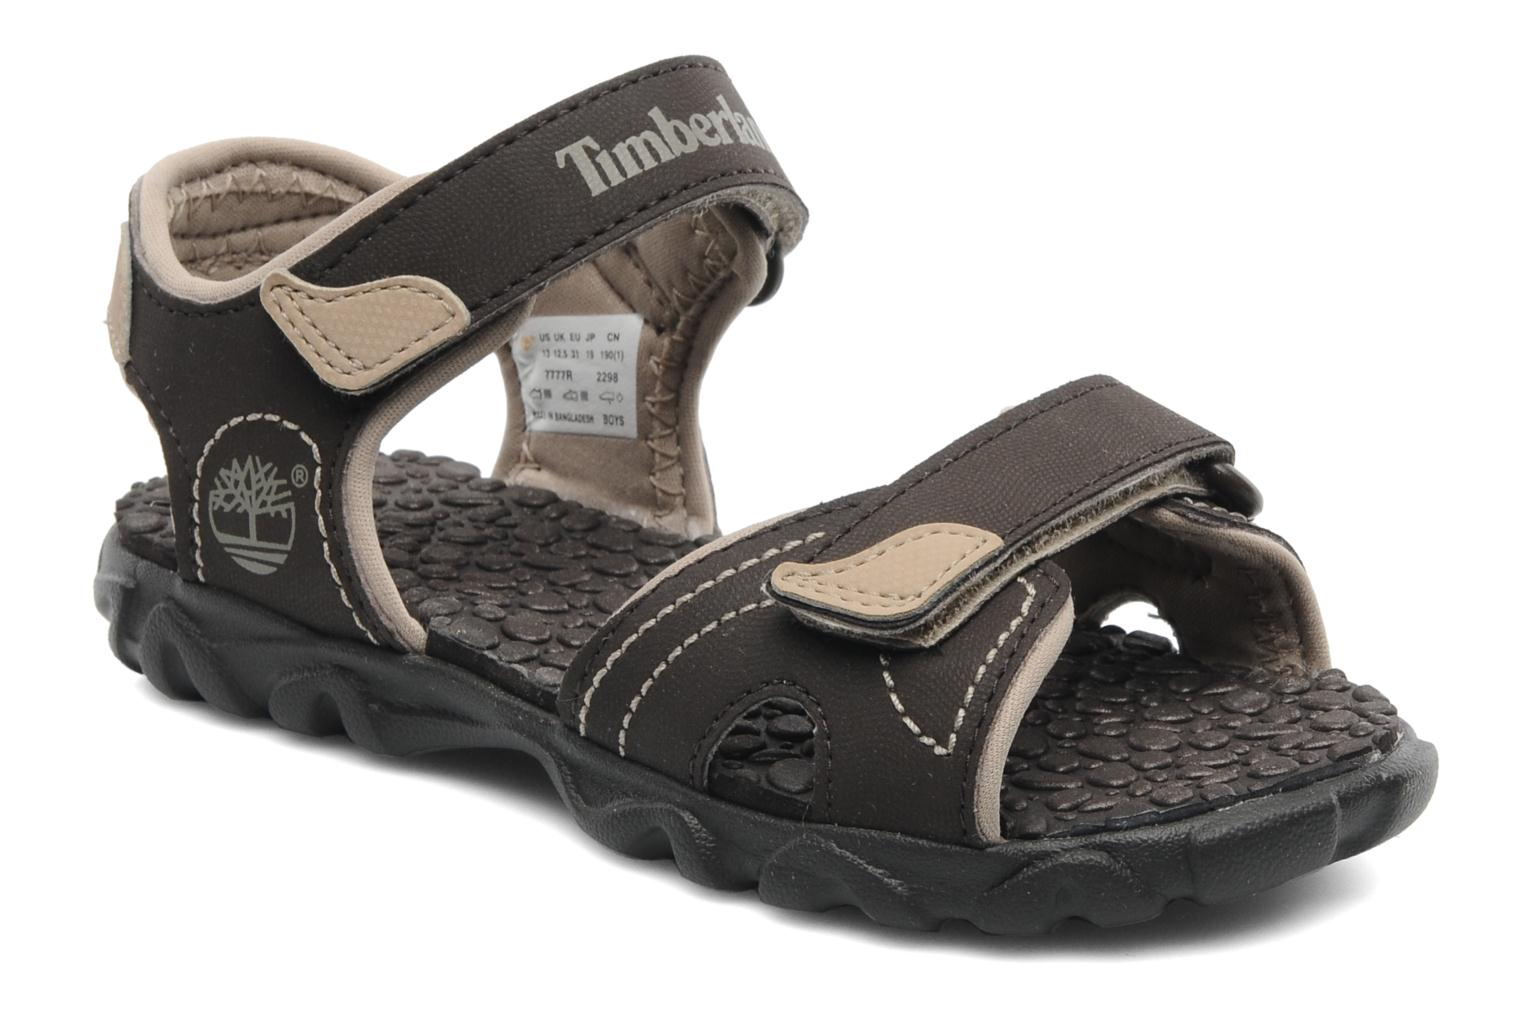 Splashtown 2 Strap Sandal J Brown with Tan